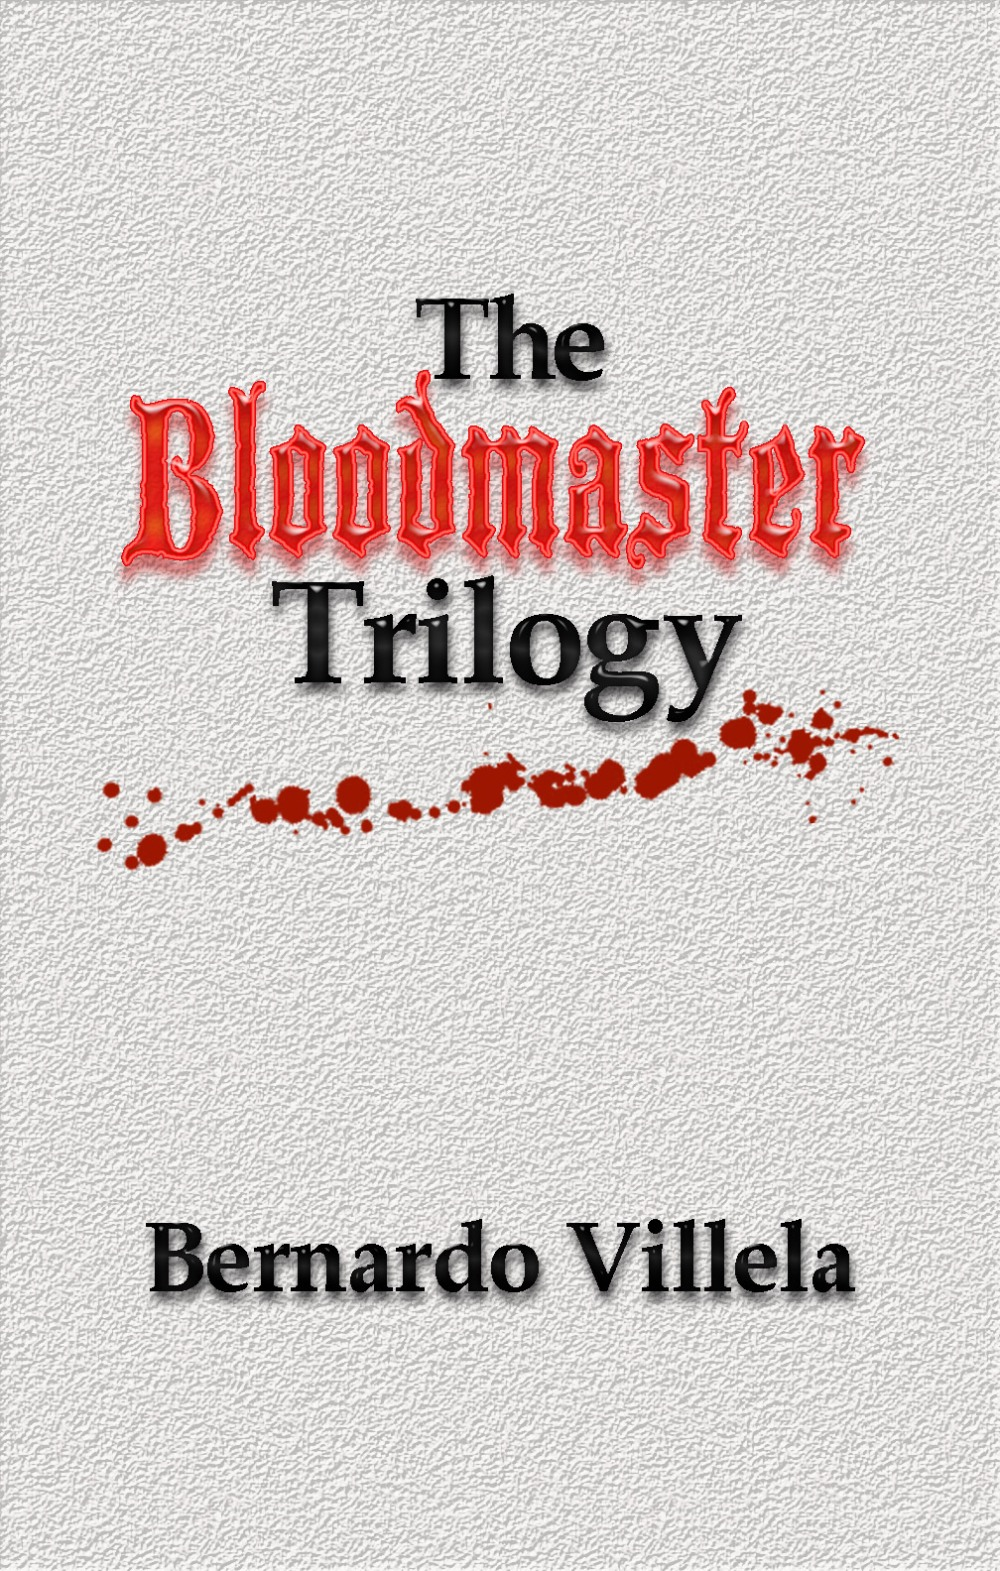 Bloodmaster (David Rosenthal)